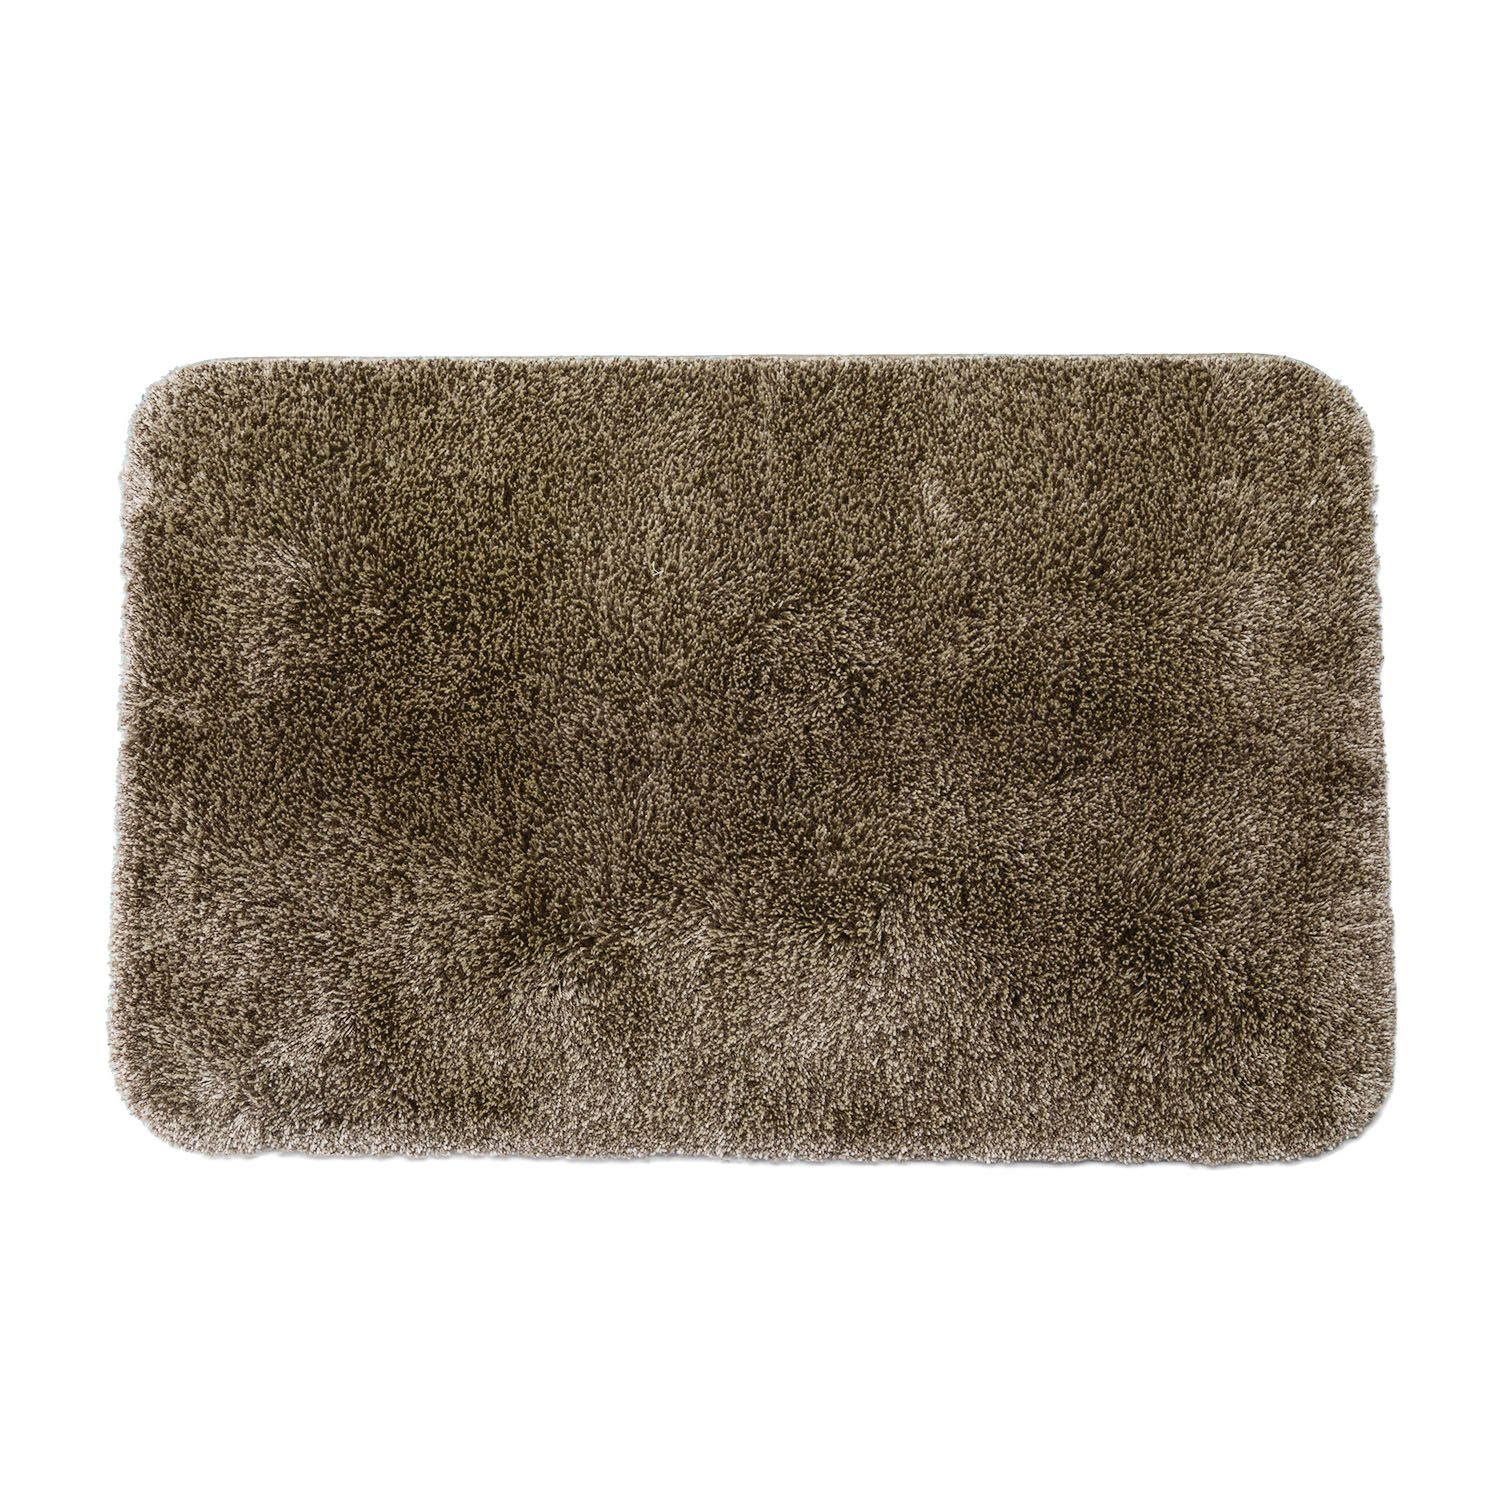 Goods for Life Ultimate Bath Rug 24 x 38